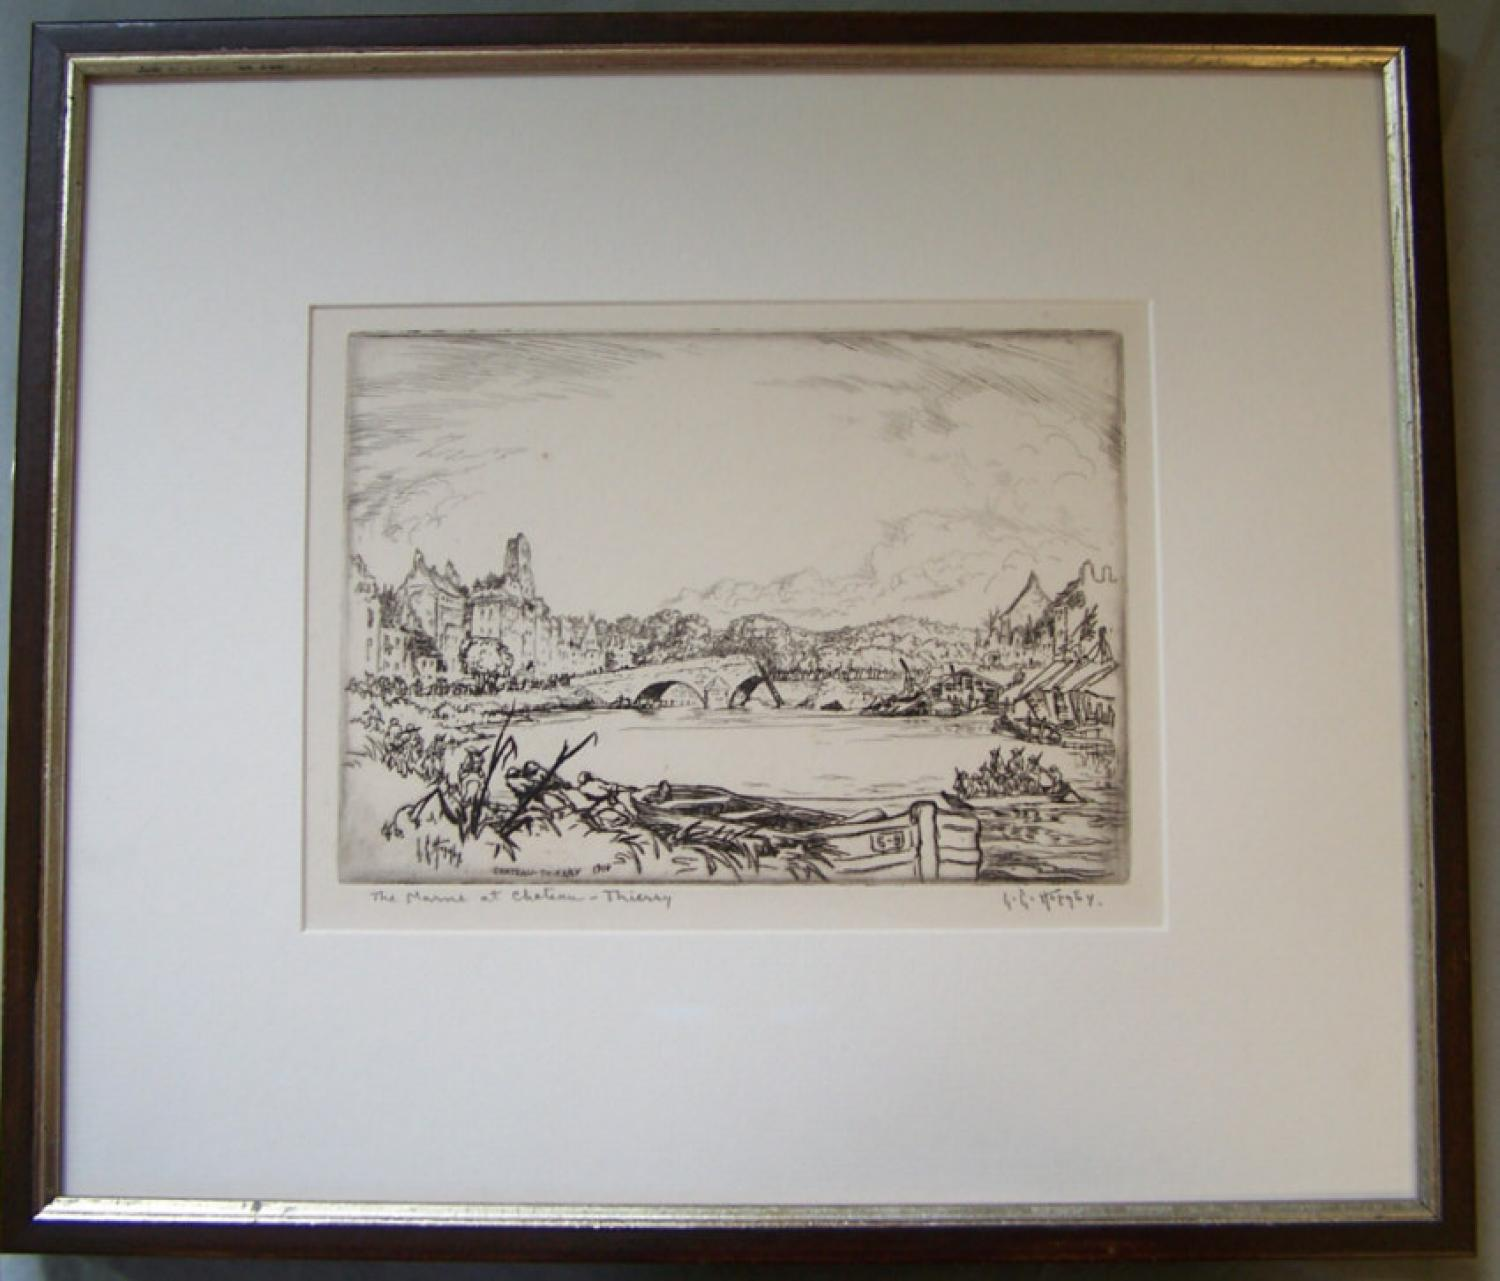 The Marne Chateau Thierry drypoint etching Lester Hornby c1918